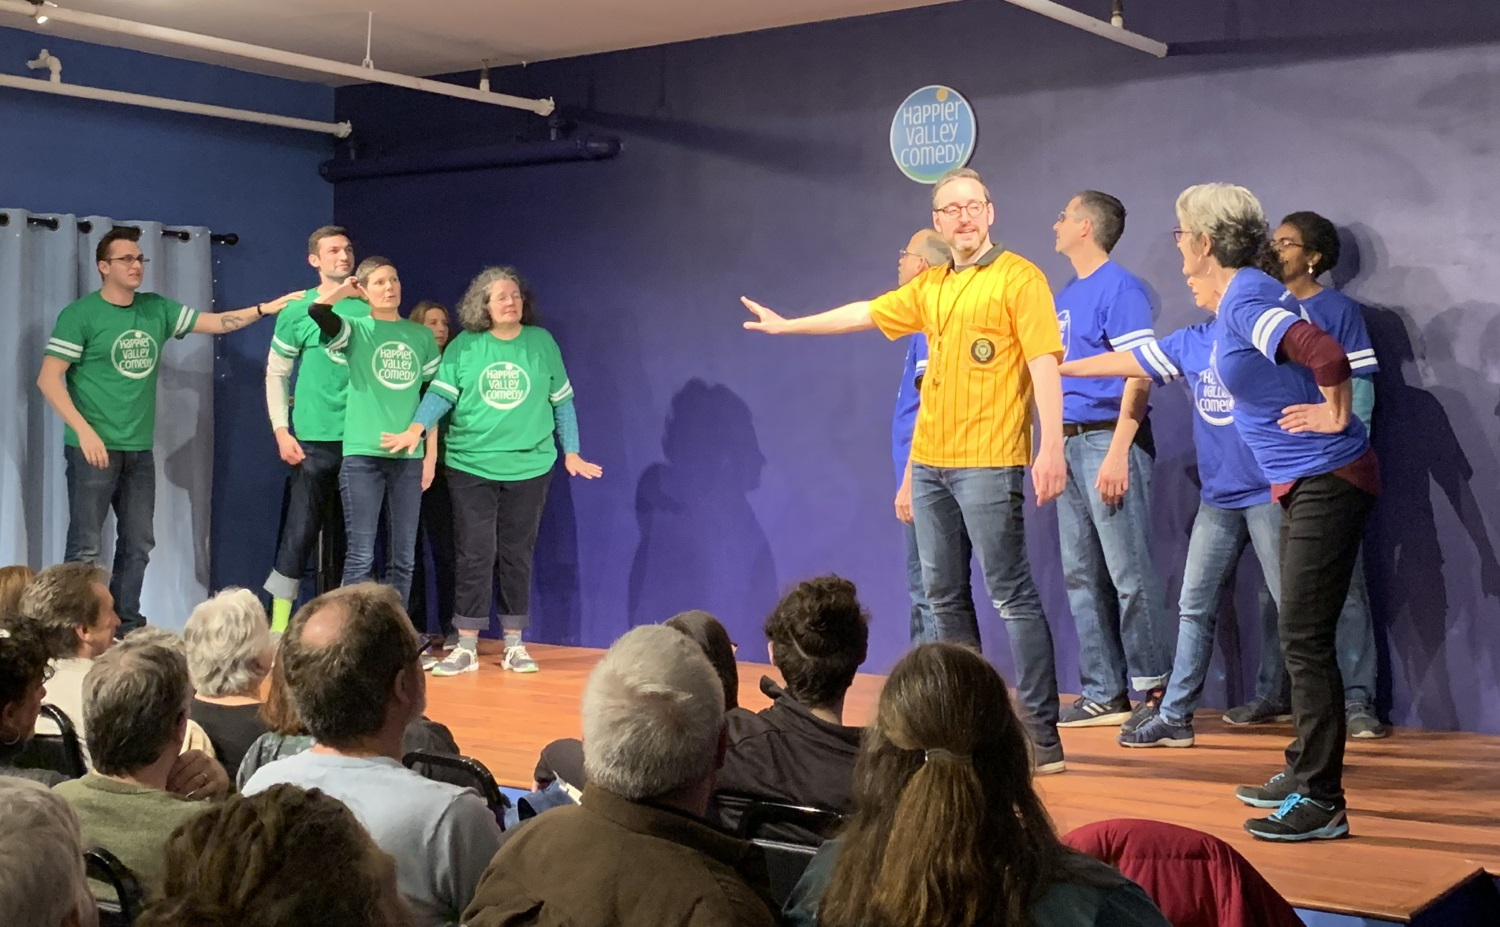 Stagestruck: Happier Valley Comedy – Joy in the unexpected